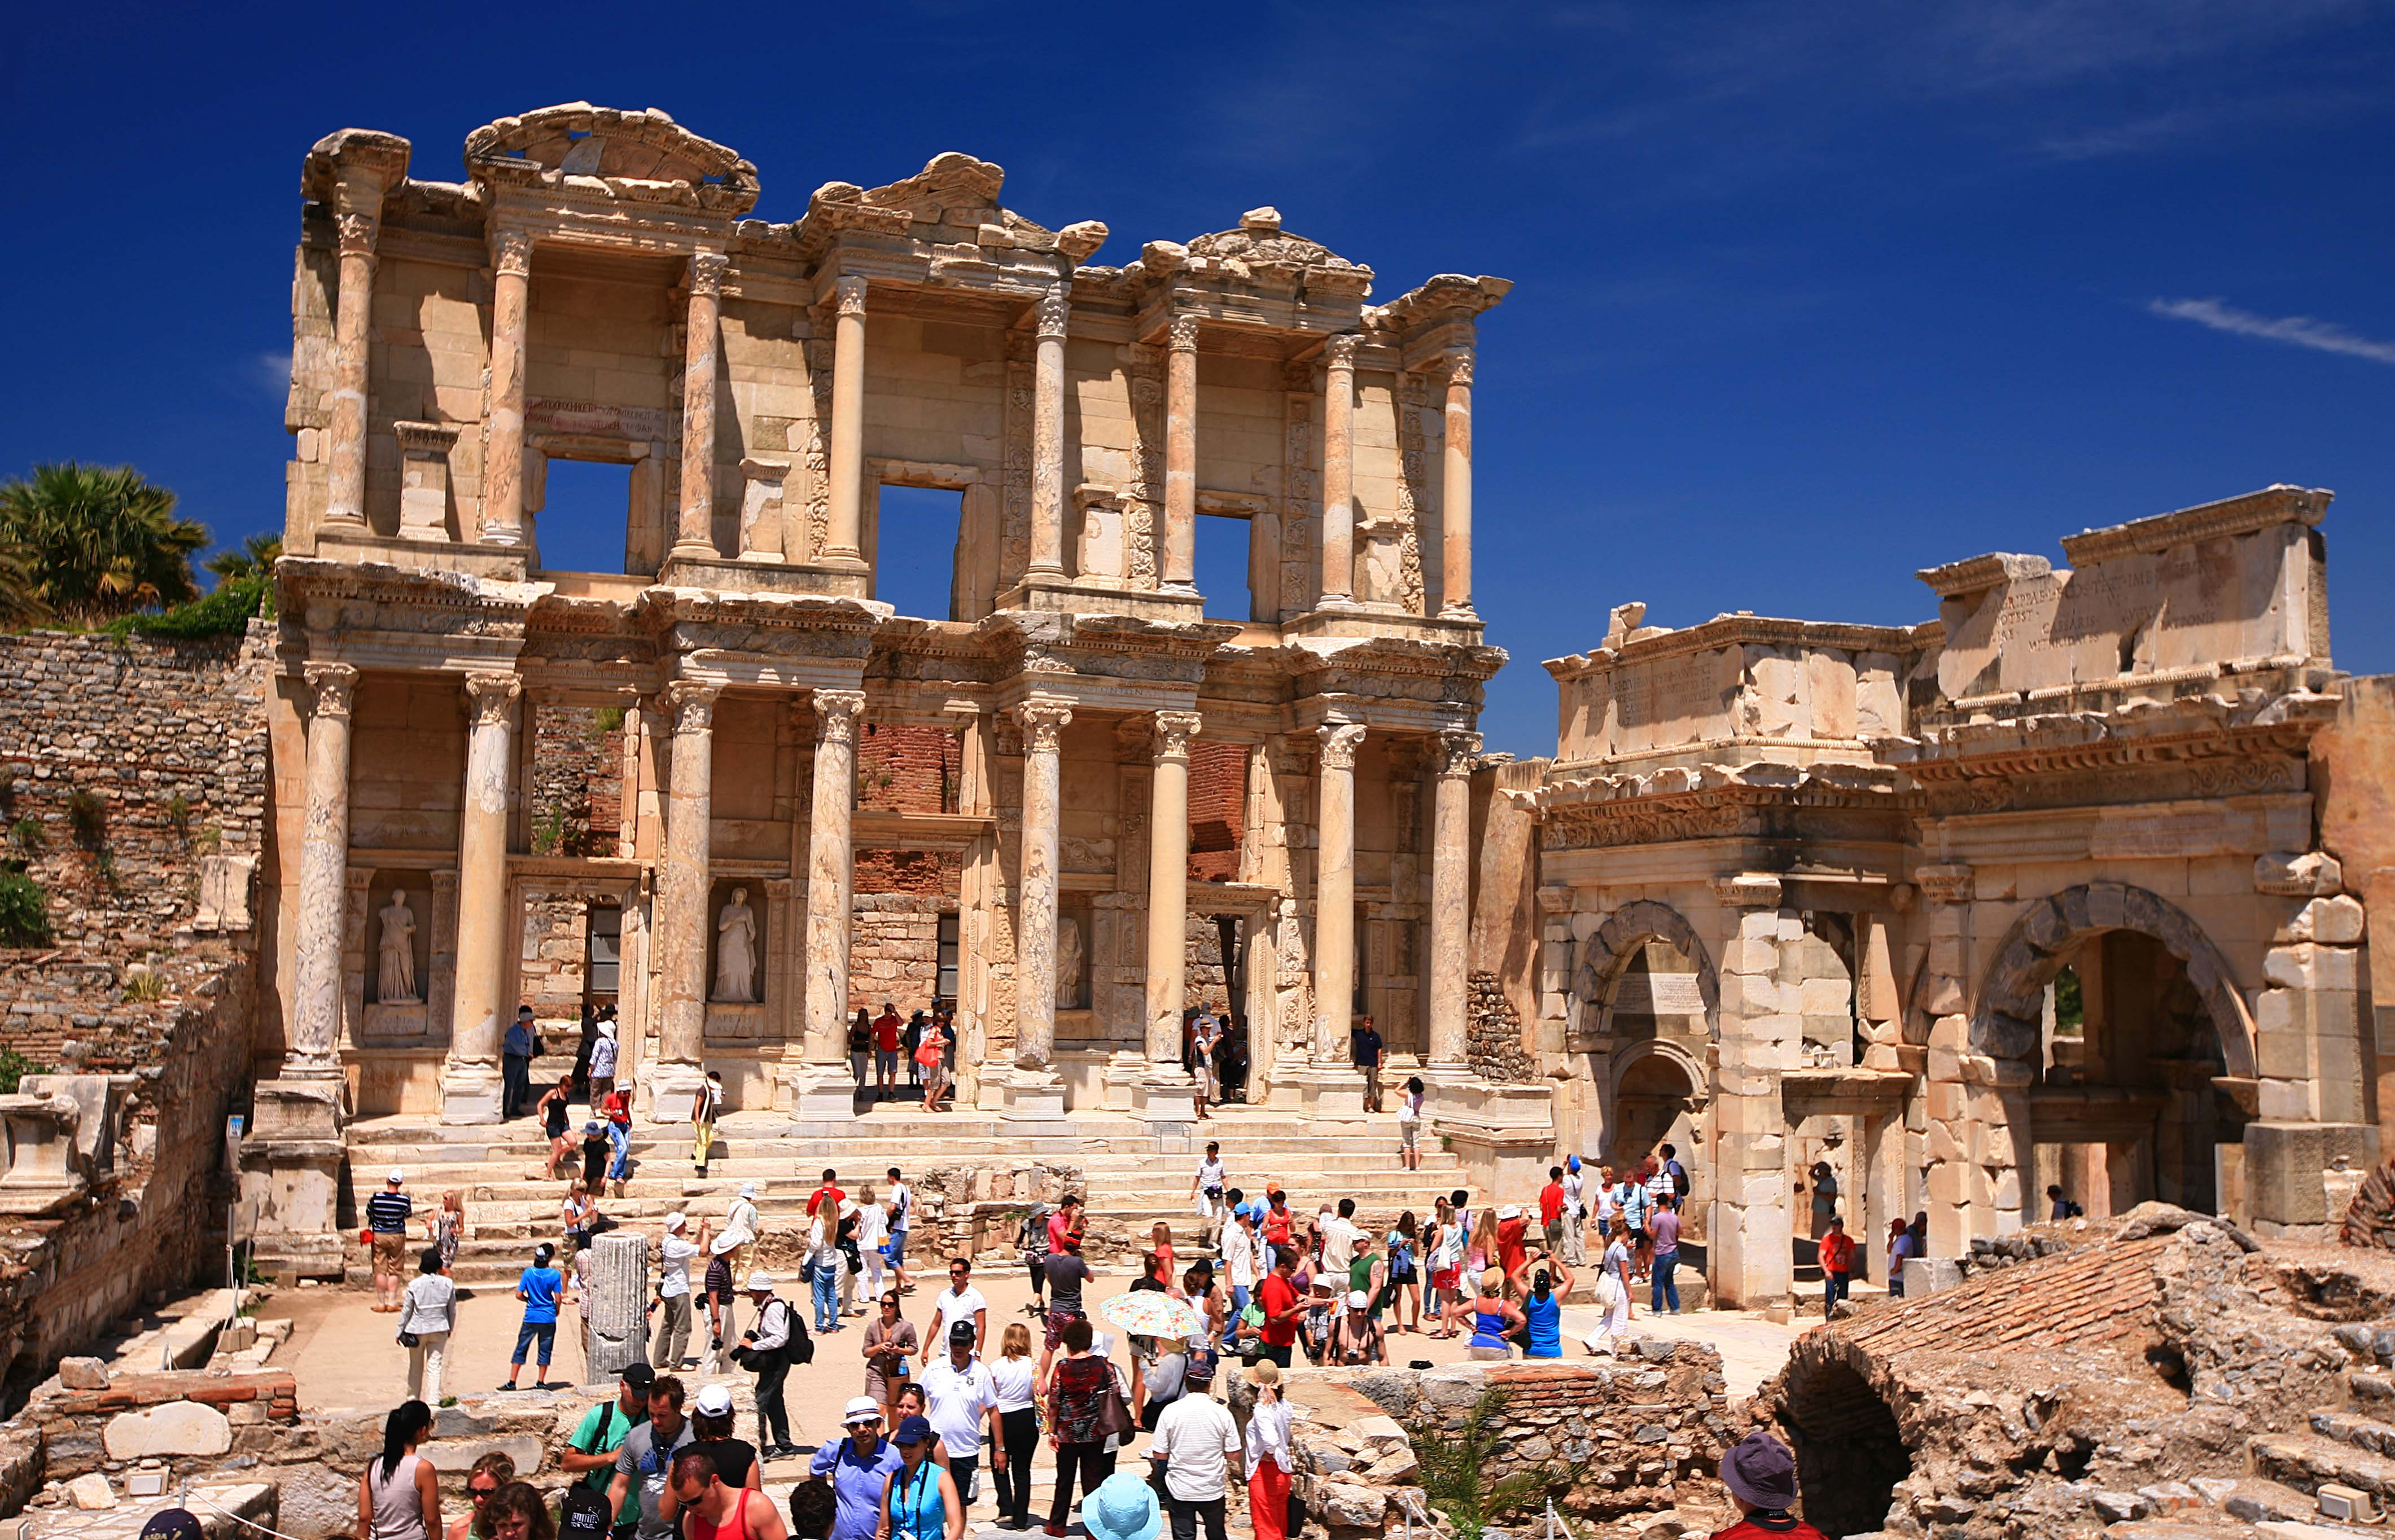 File:Library of Celsus - Ancient City of Ephesus, Selçuk ...